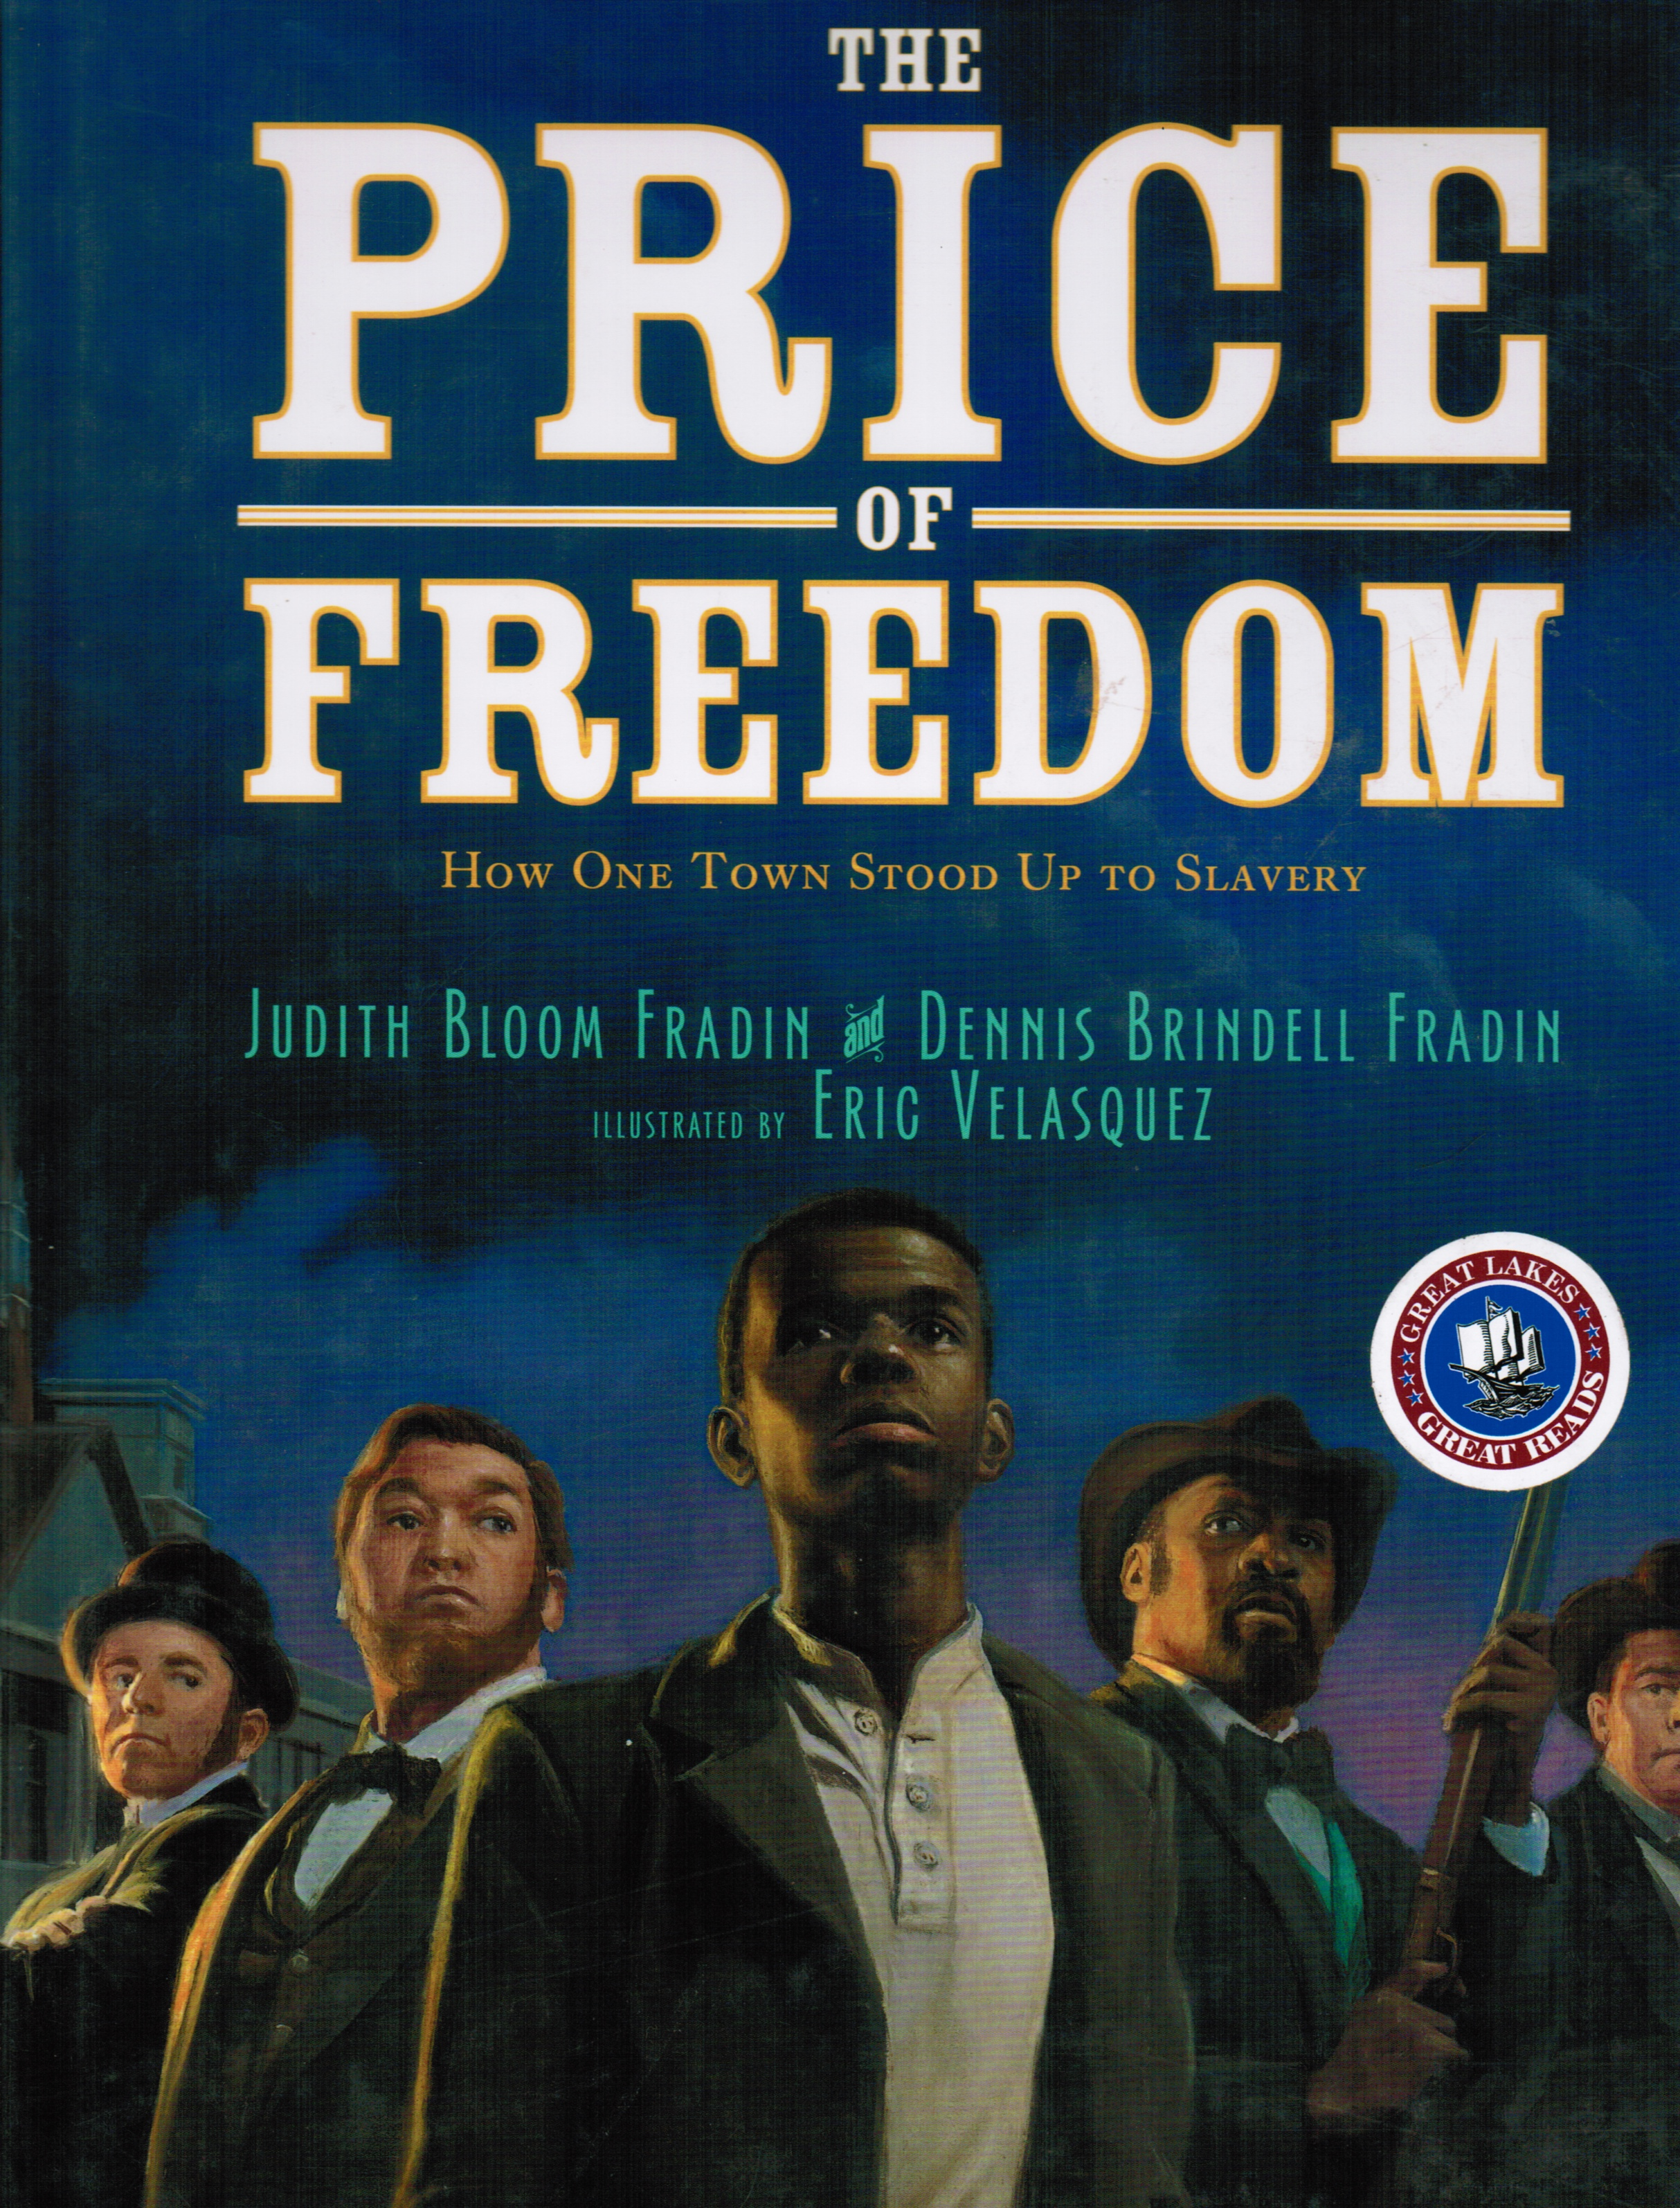 Image for The Price of Freedom: How One Town Stood Up to Slavery